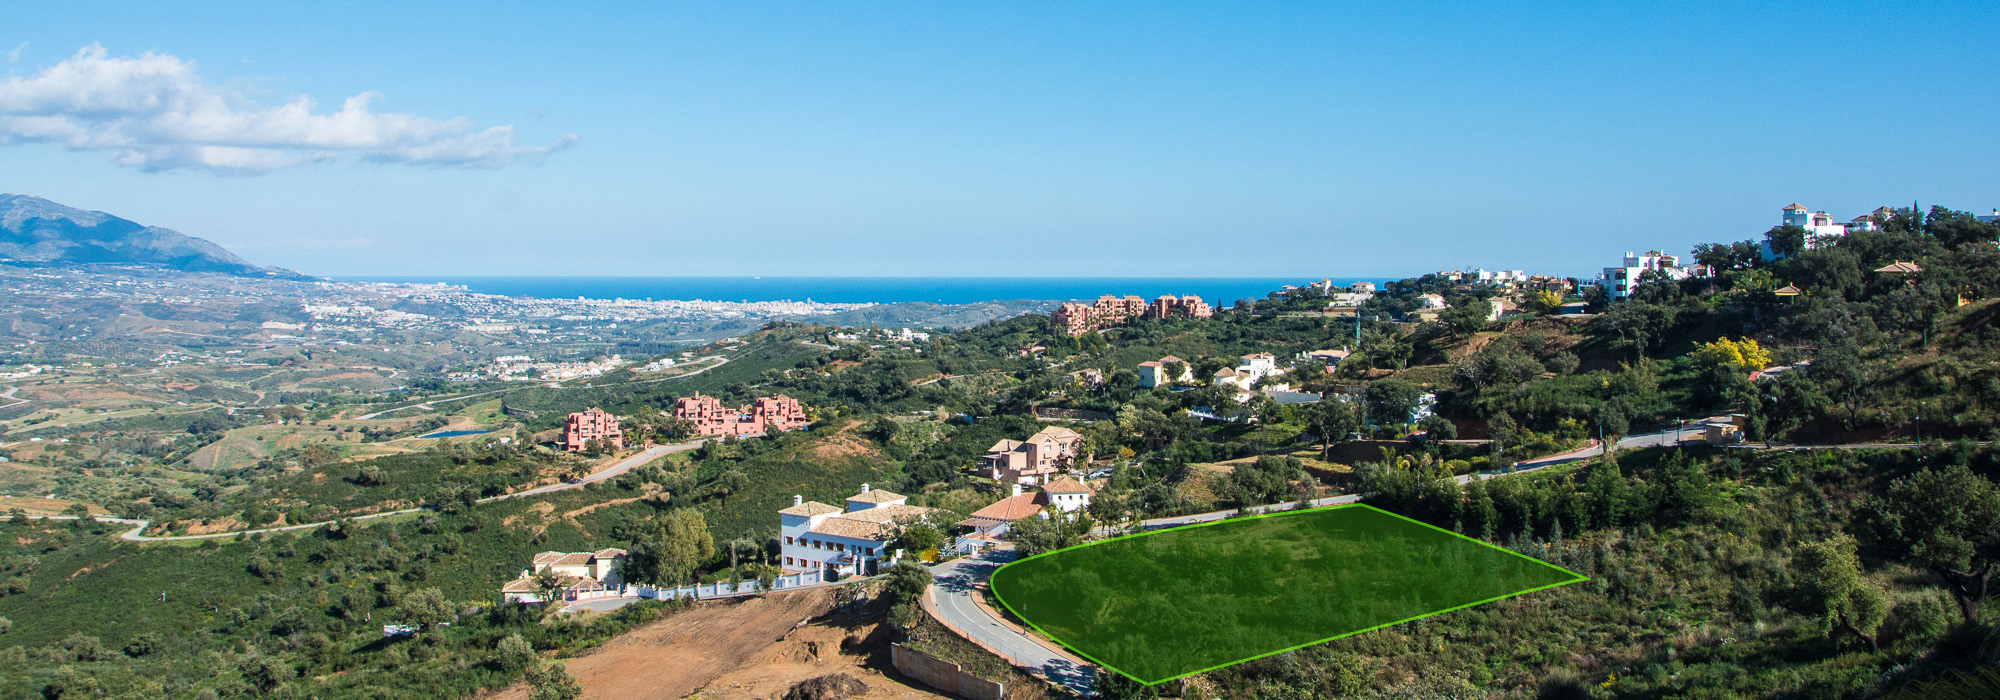 Apartment – Penthouse in Nueva Andalucía,Costa del Sol for sale